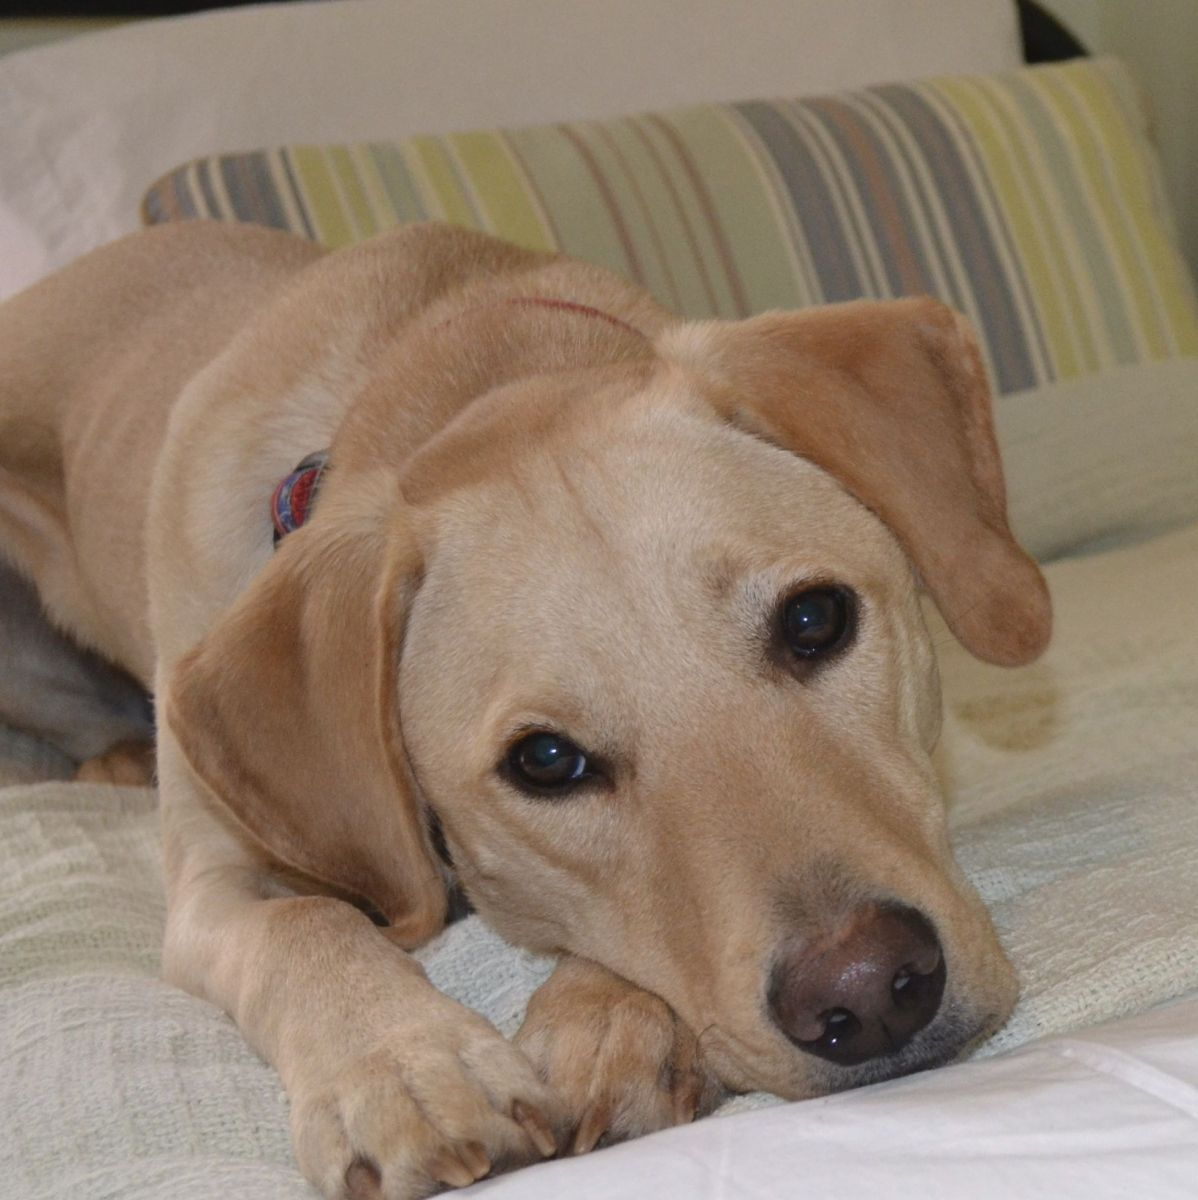 Pet Friendly Hotels for Dogs and Cats